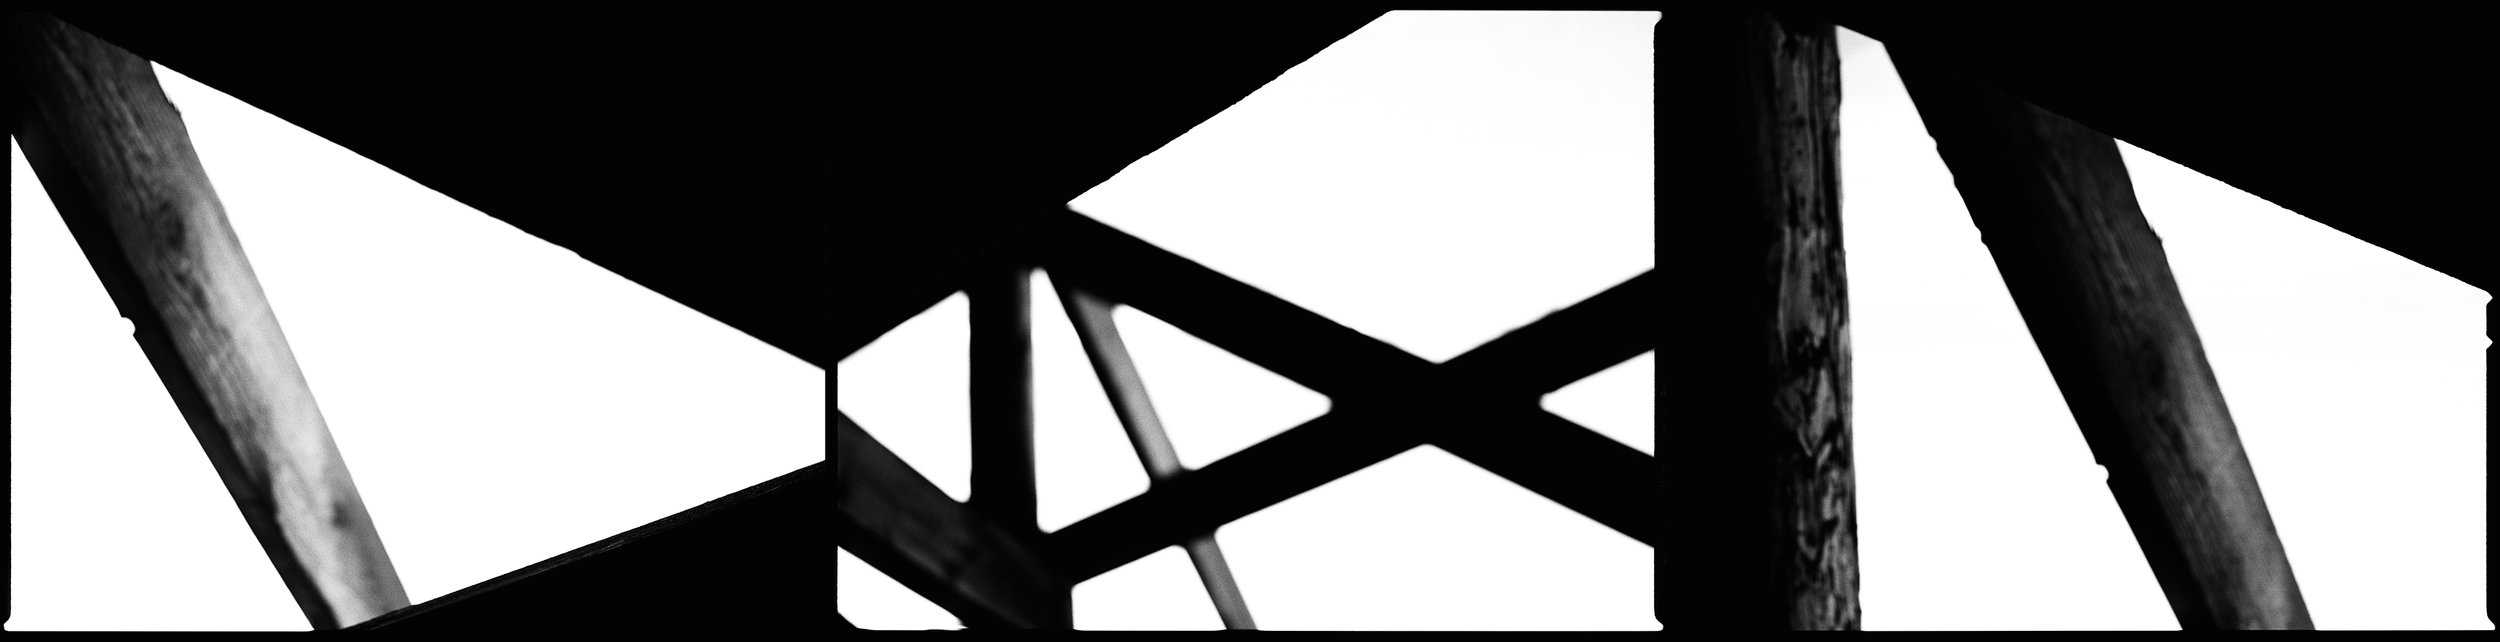 Untitled #20   (Nowhere)  , 2012/ archival pigment   print, 13 1/8  x 48 inches  ,  edition of 3 plus 2 AP